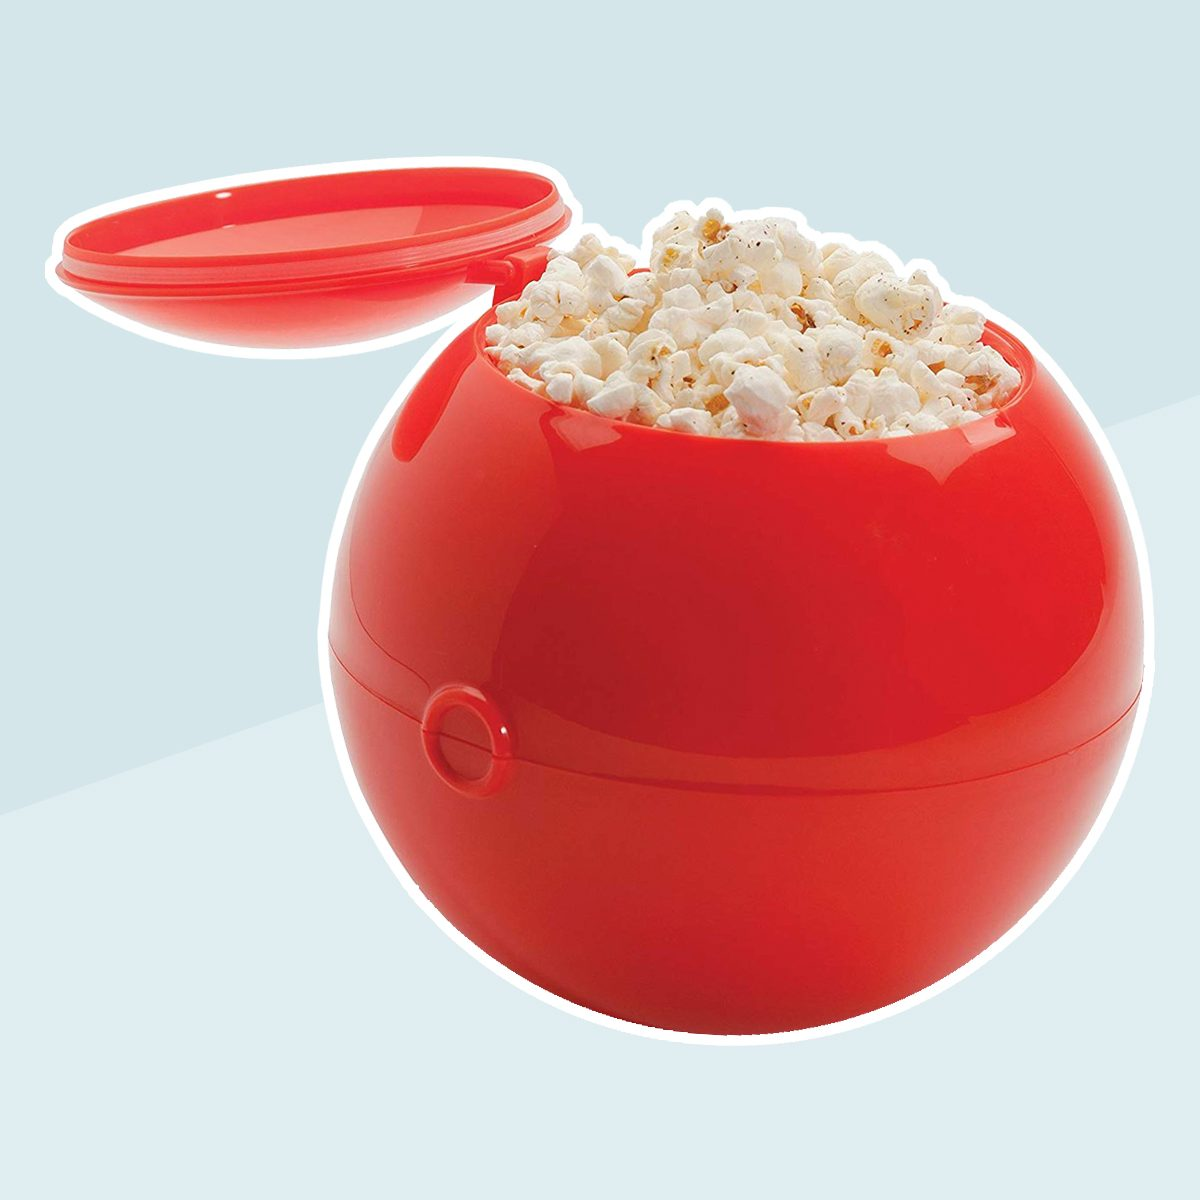 FuhlSpeed KPB-27 Popcorn Ball Microwavable Popcorn Maker/Mixer